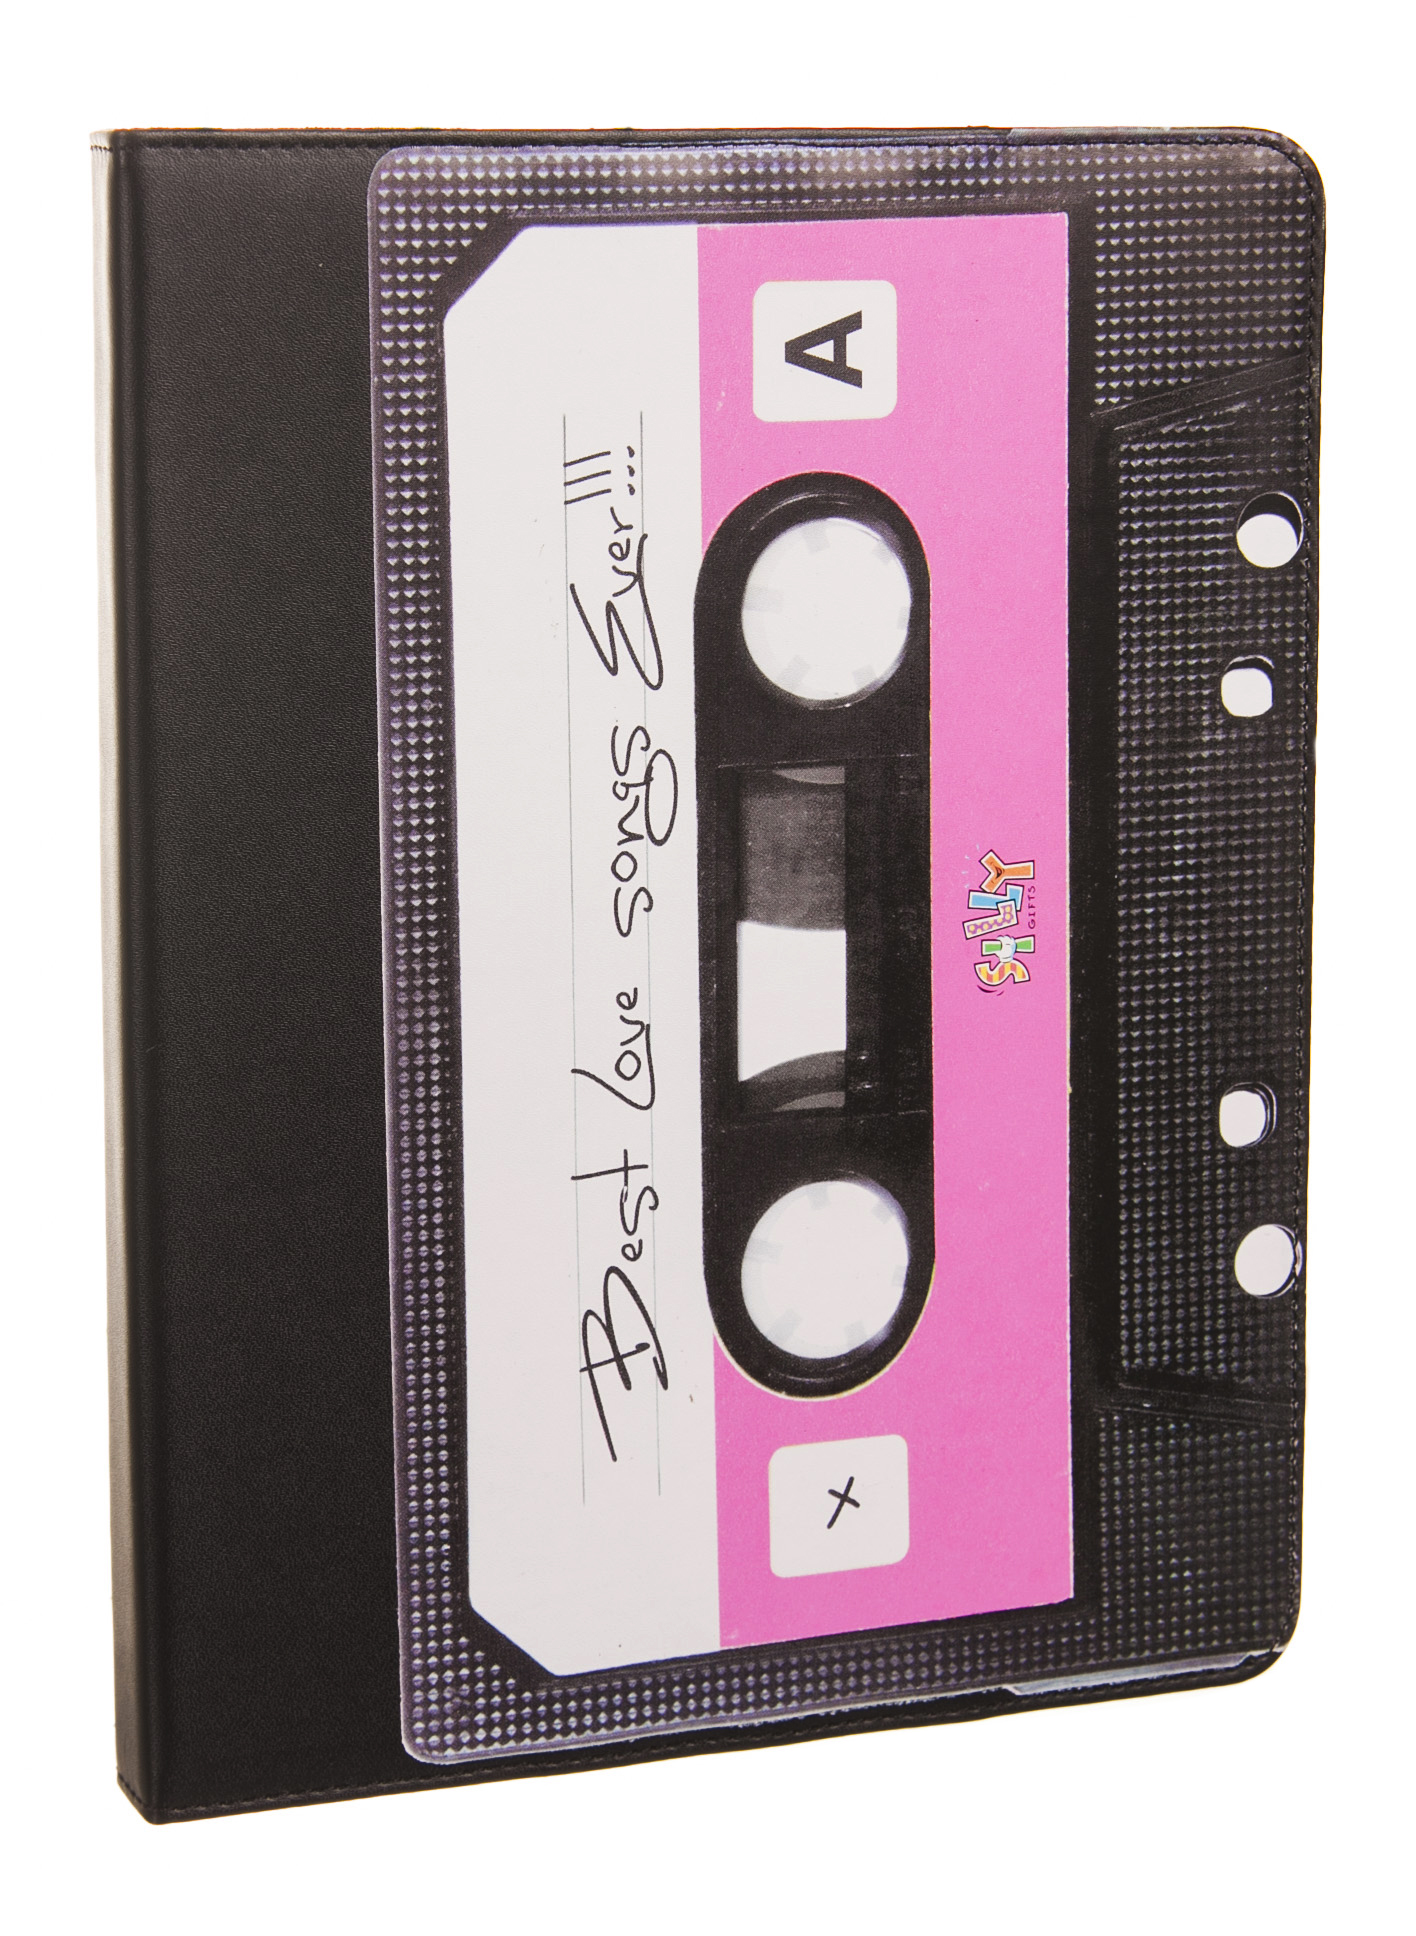 Retro Cassette iPad Cover